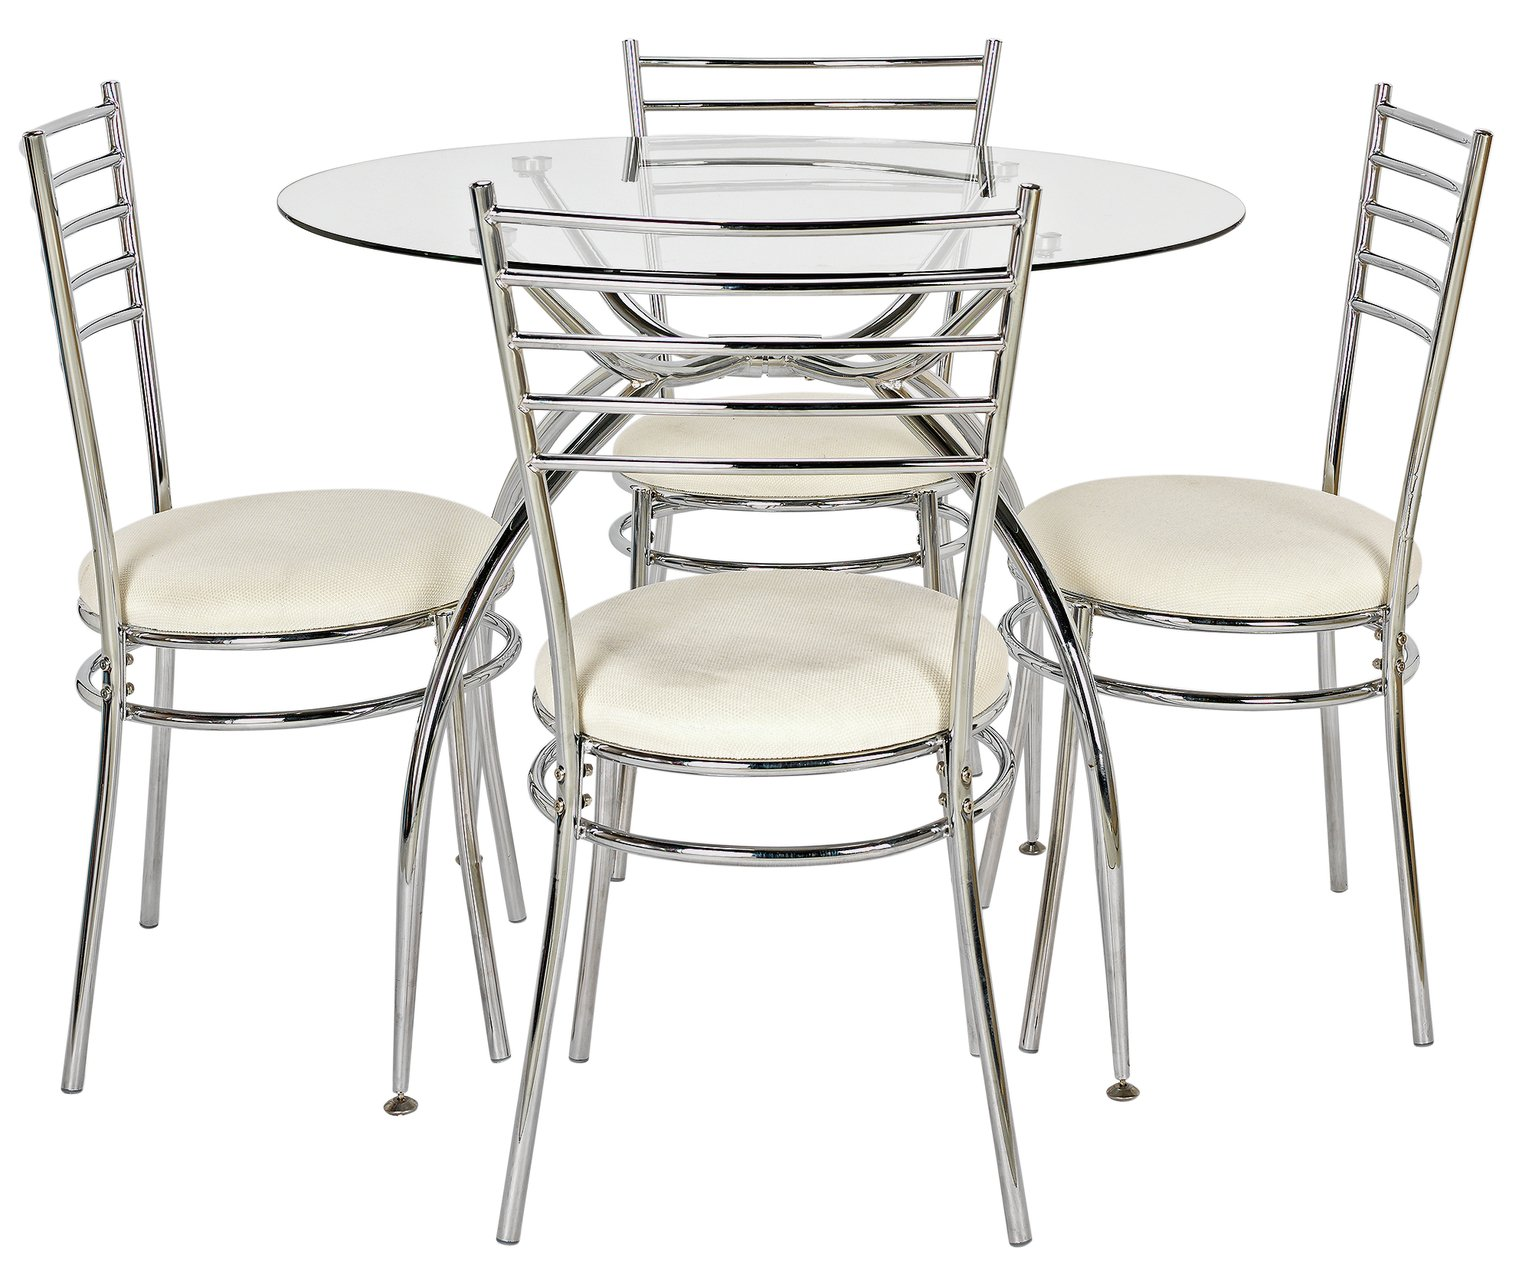 Versatile Kitchen Table And Chair Sets For Your Home: Buy HOME Lusi Glass Dining Table And 4 Chairs